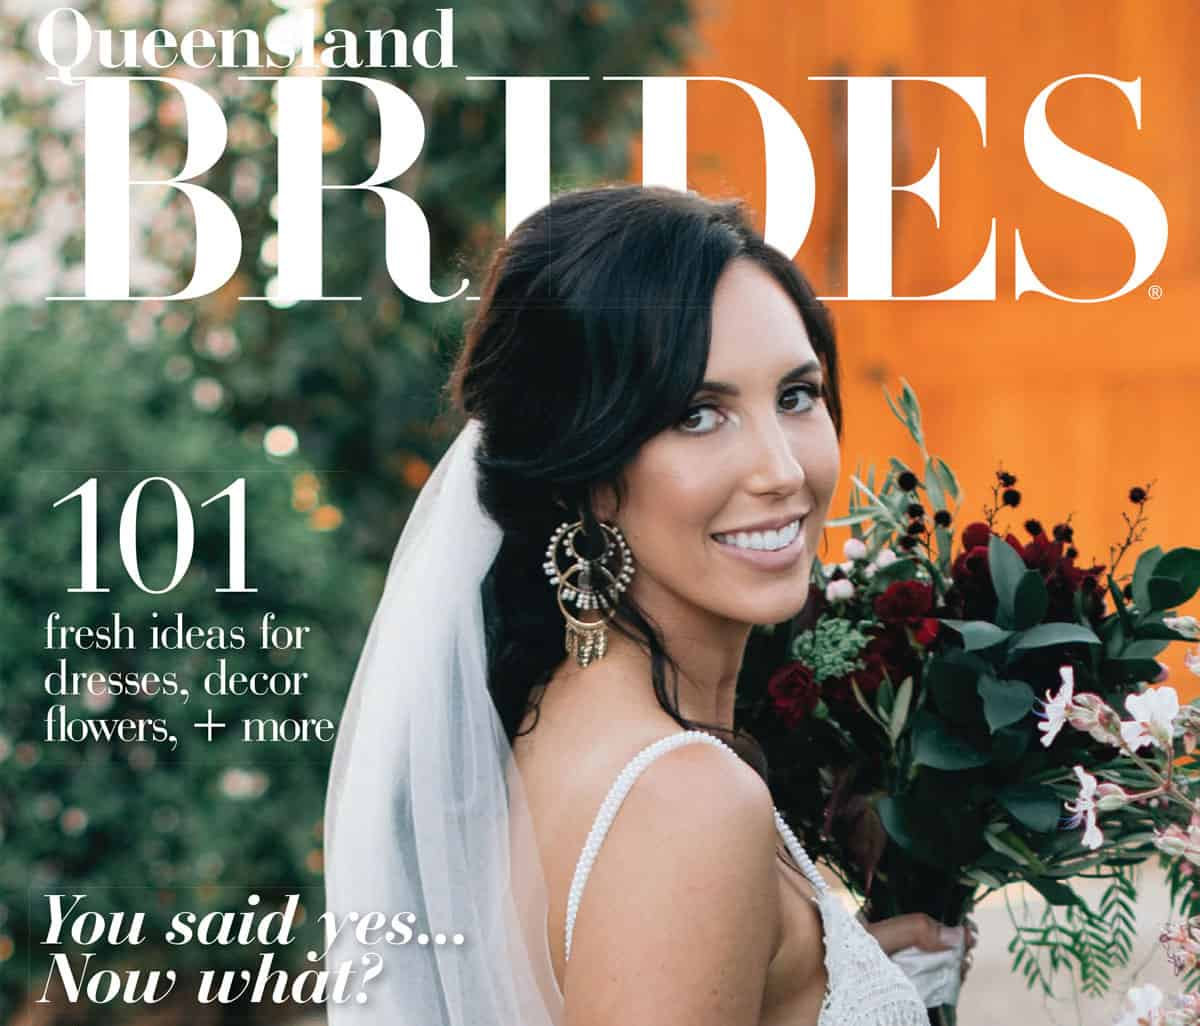 Queensland Brides Spring Summer 2019 edition